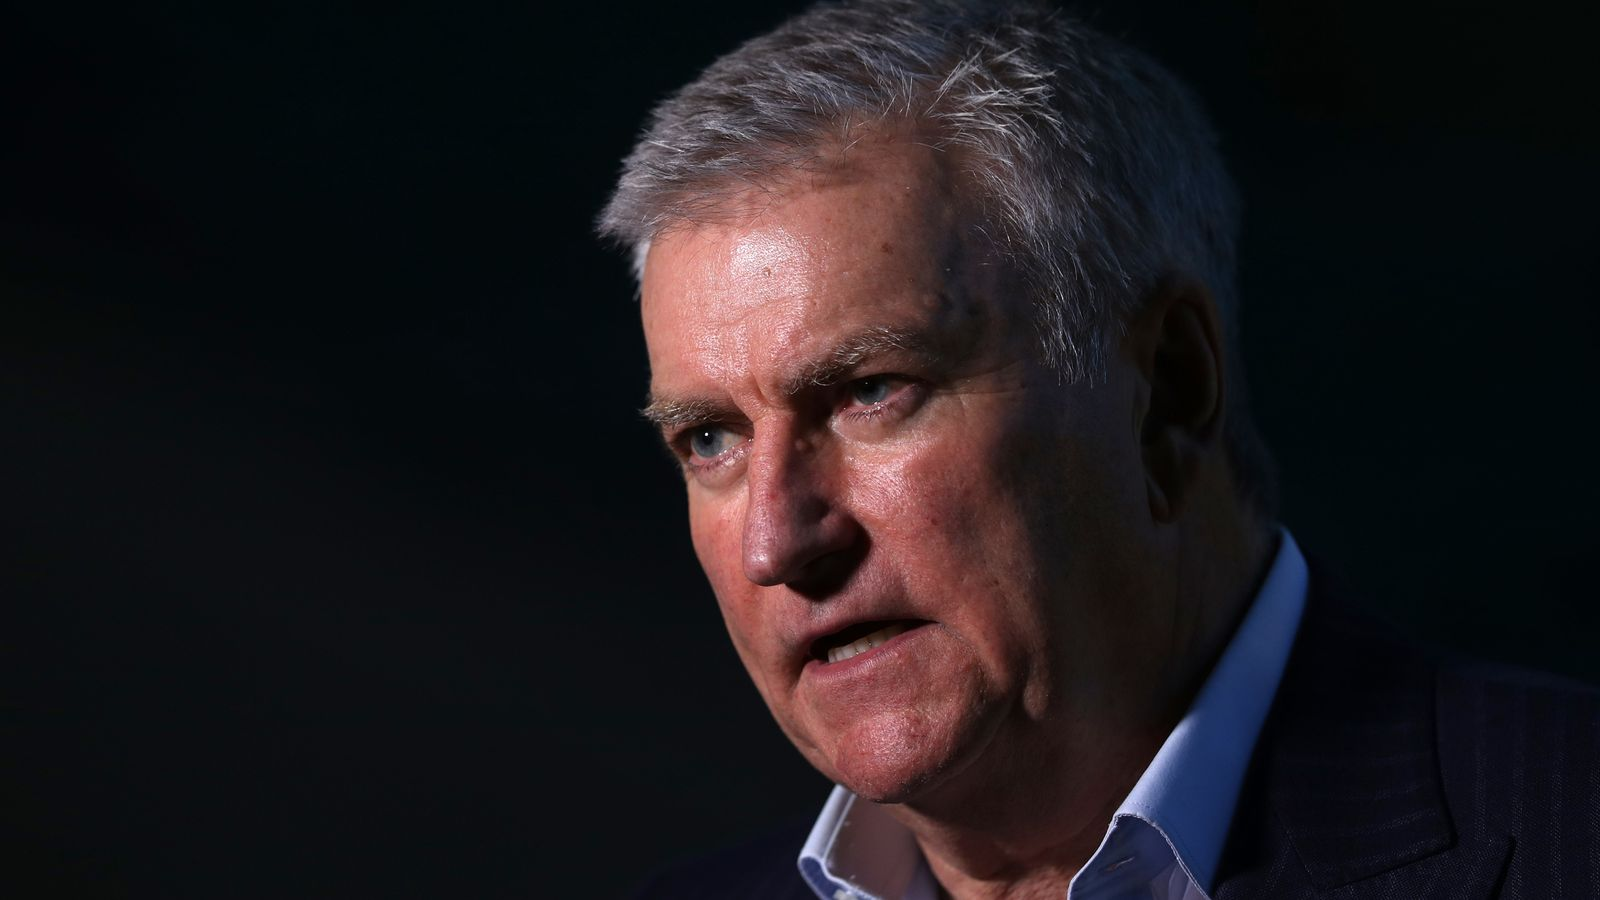 RFU chief warns rugby union could be dramatically altered by coronavirus